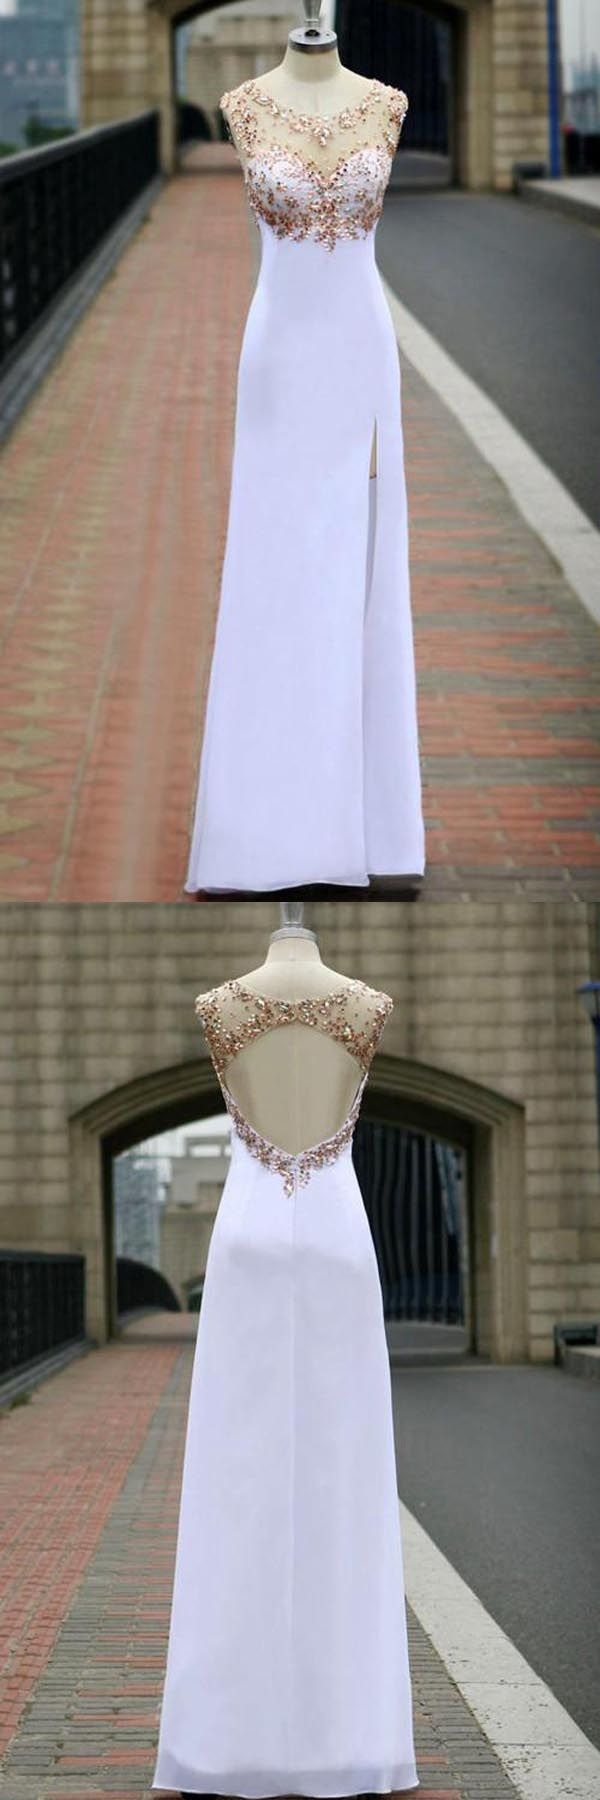 Scoop chiffon open back white long prom dress with crystal pg